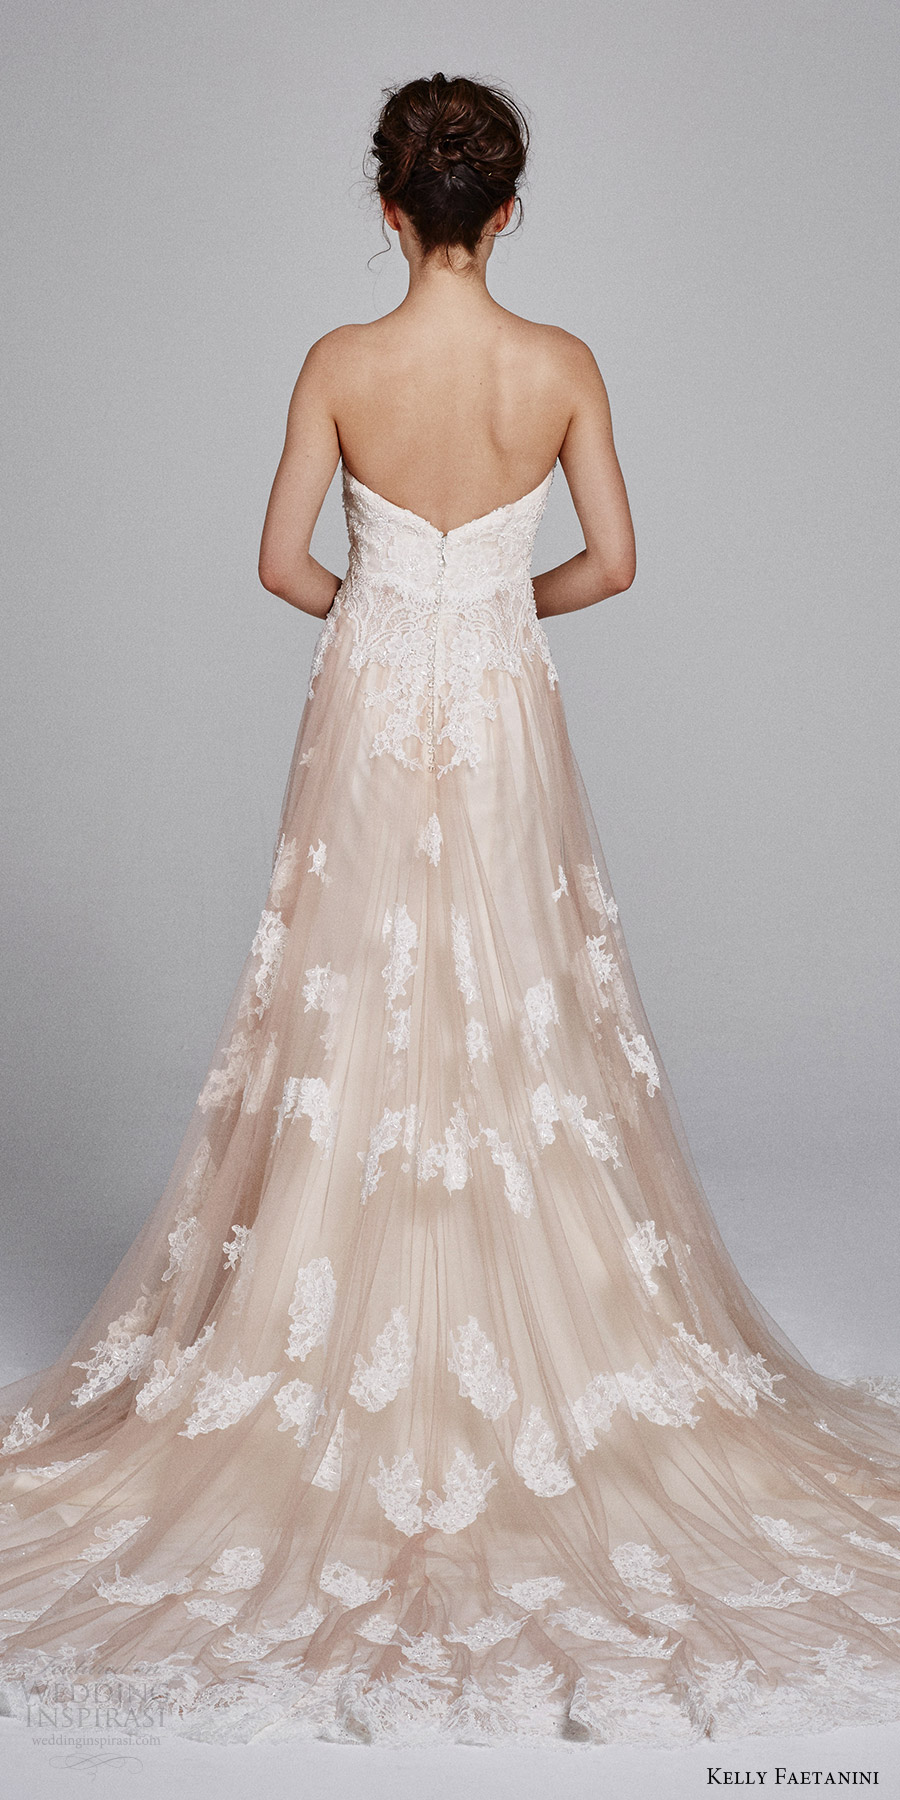 kelly faetanini bridal fall 2017 strapless sweetheart aline lace wedding dress (laurel) bv blush train